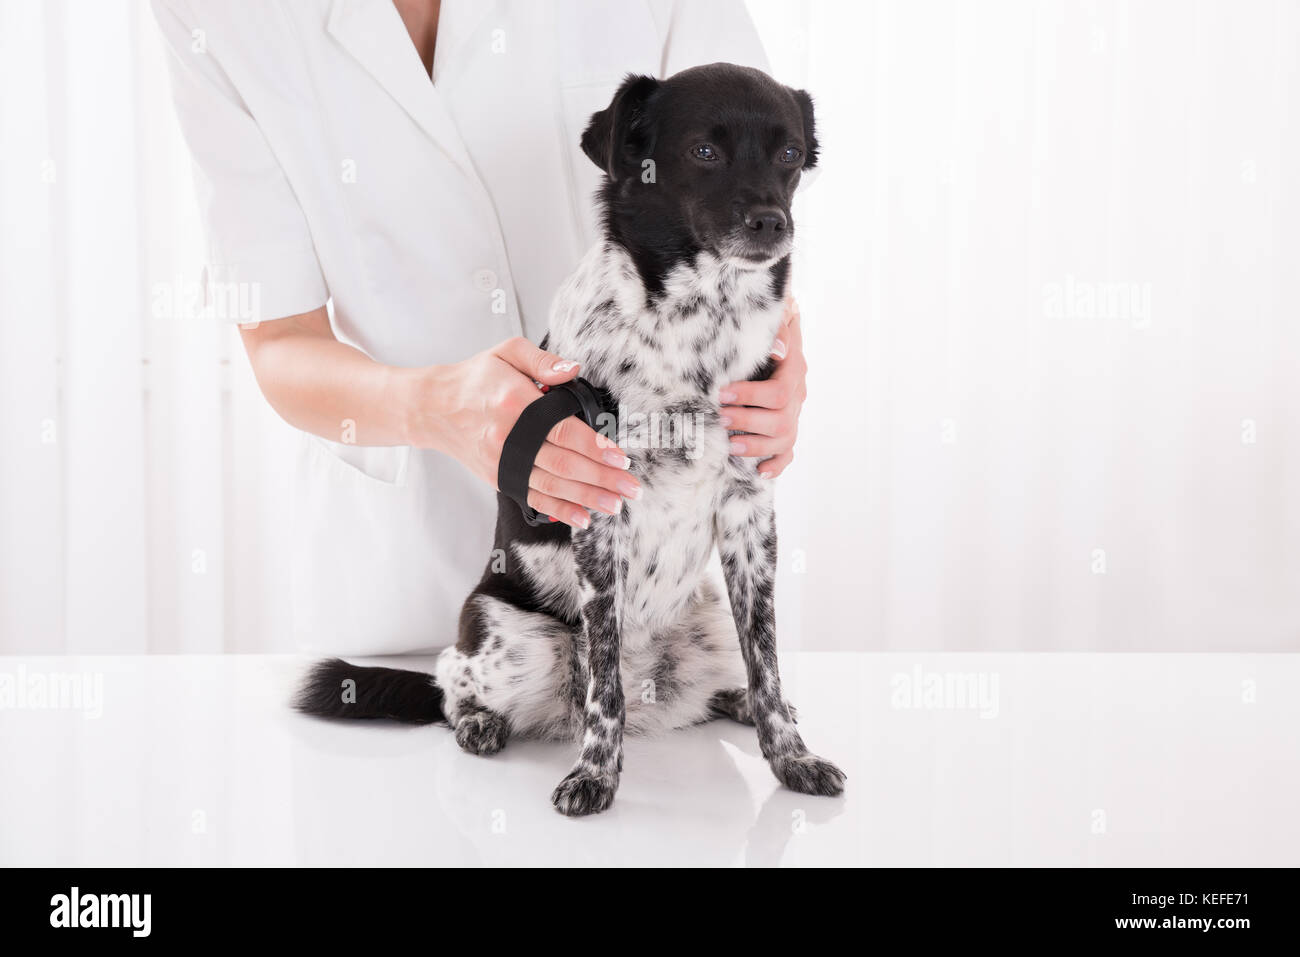 Female Vet Brushing Dog's Hair In Clinic - Stock Image